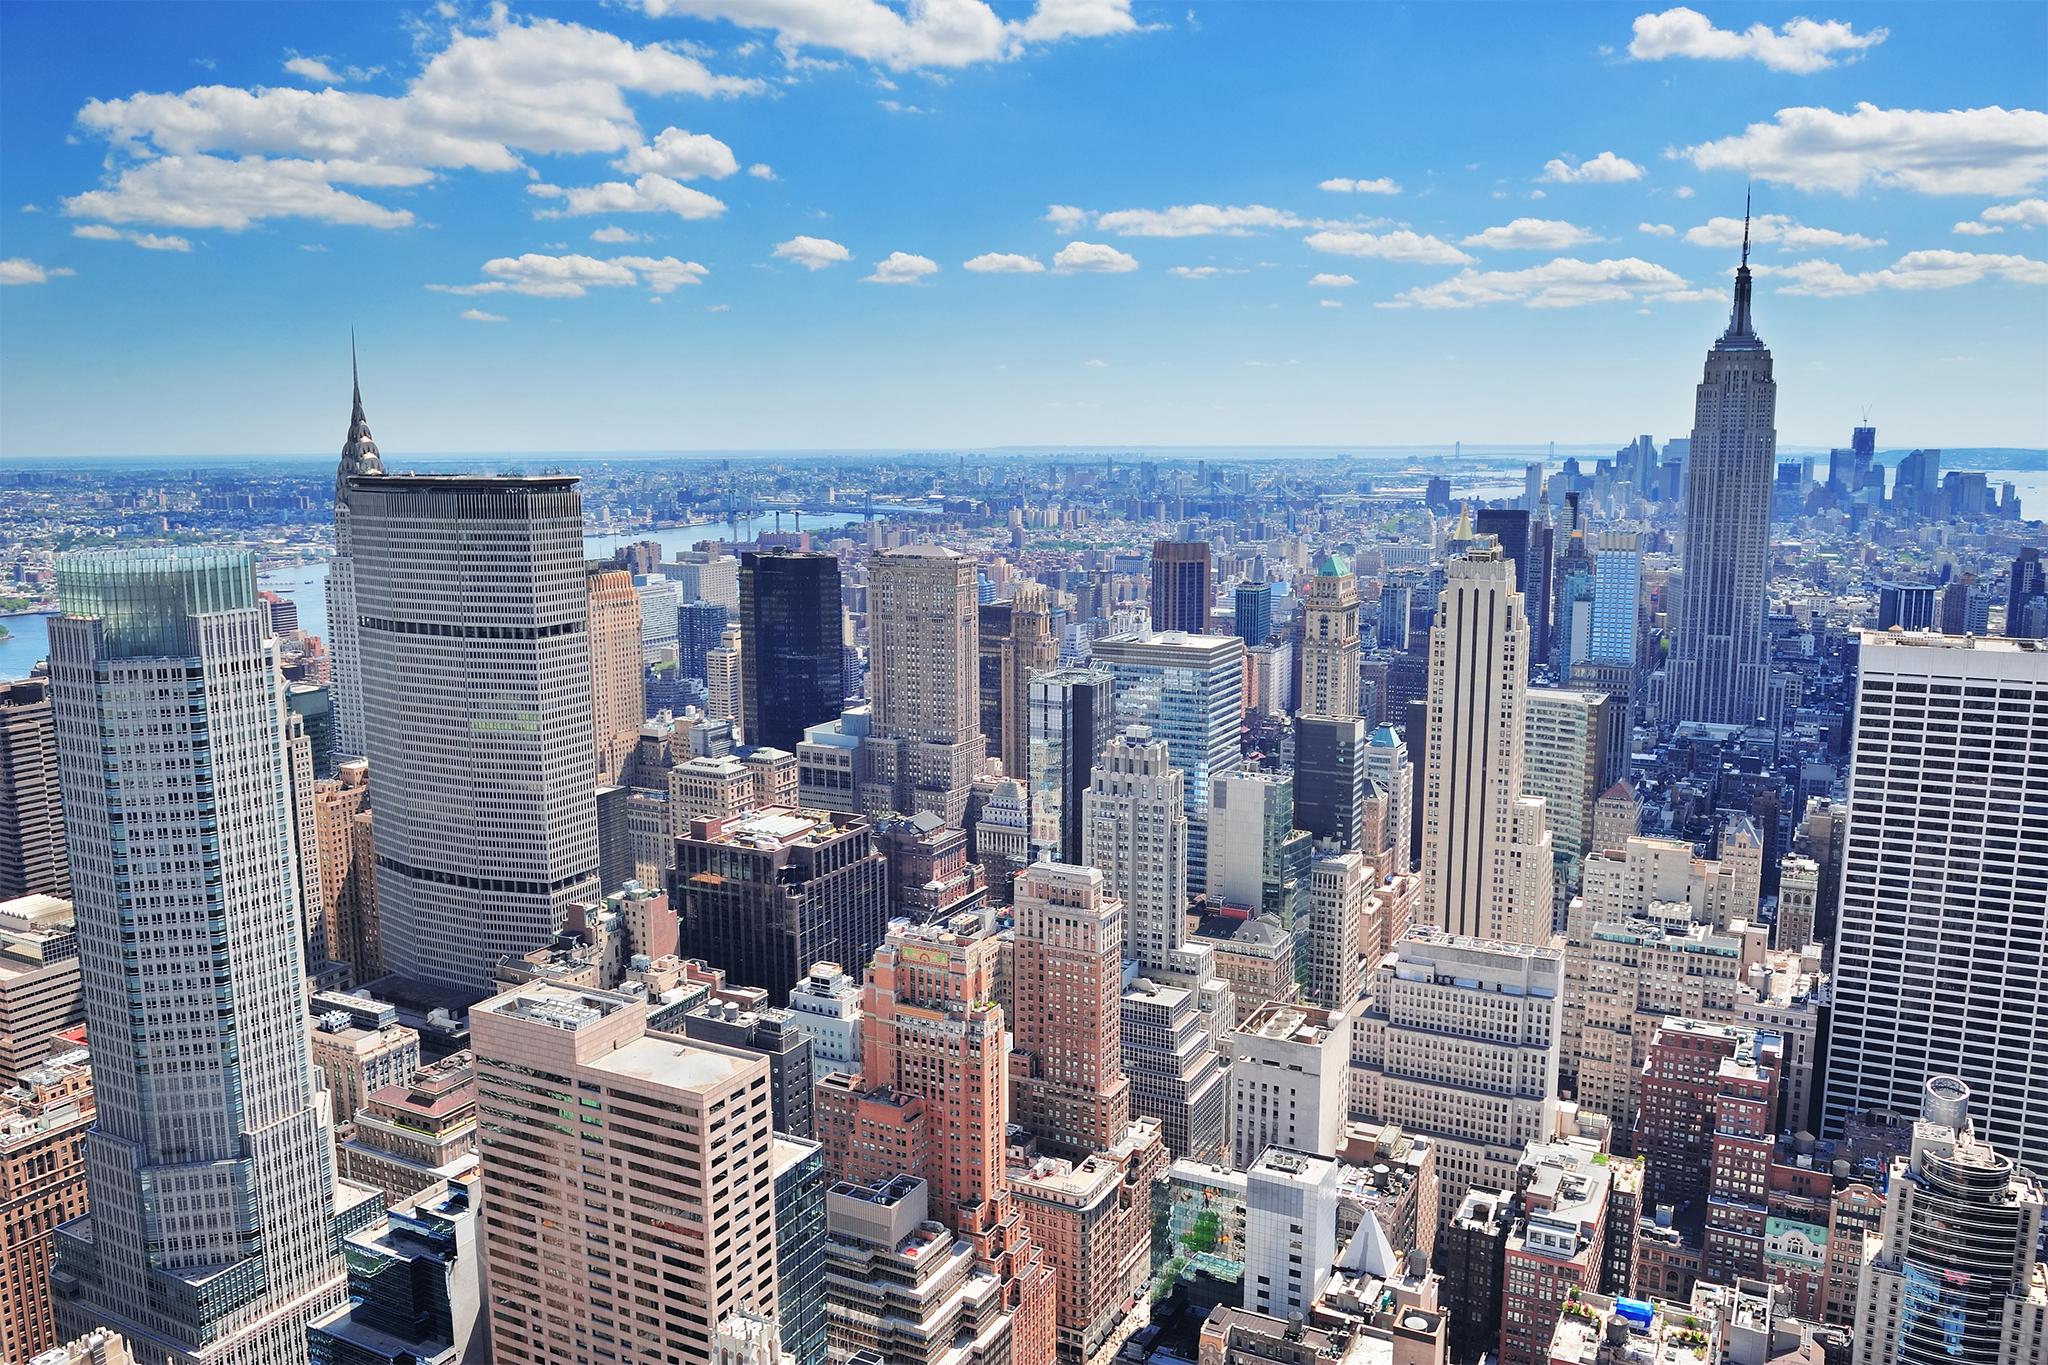 50 reasons why NYC is the greatest city in the world